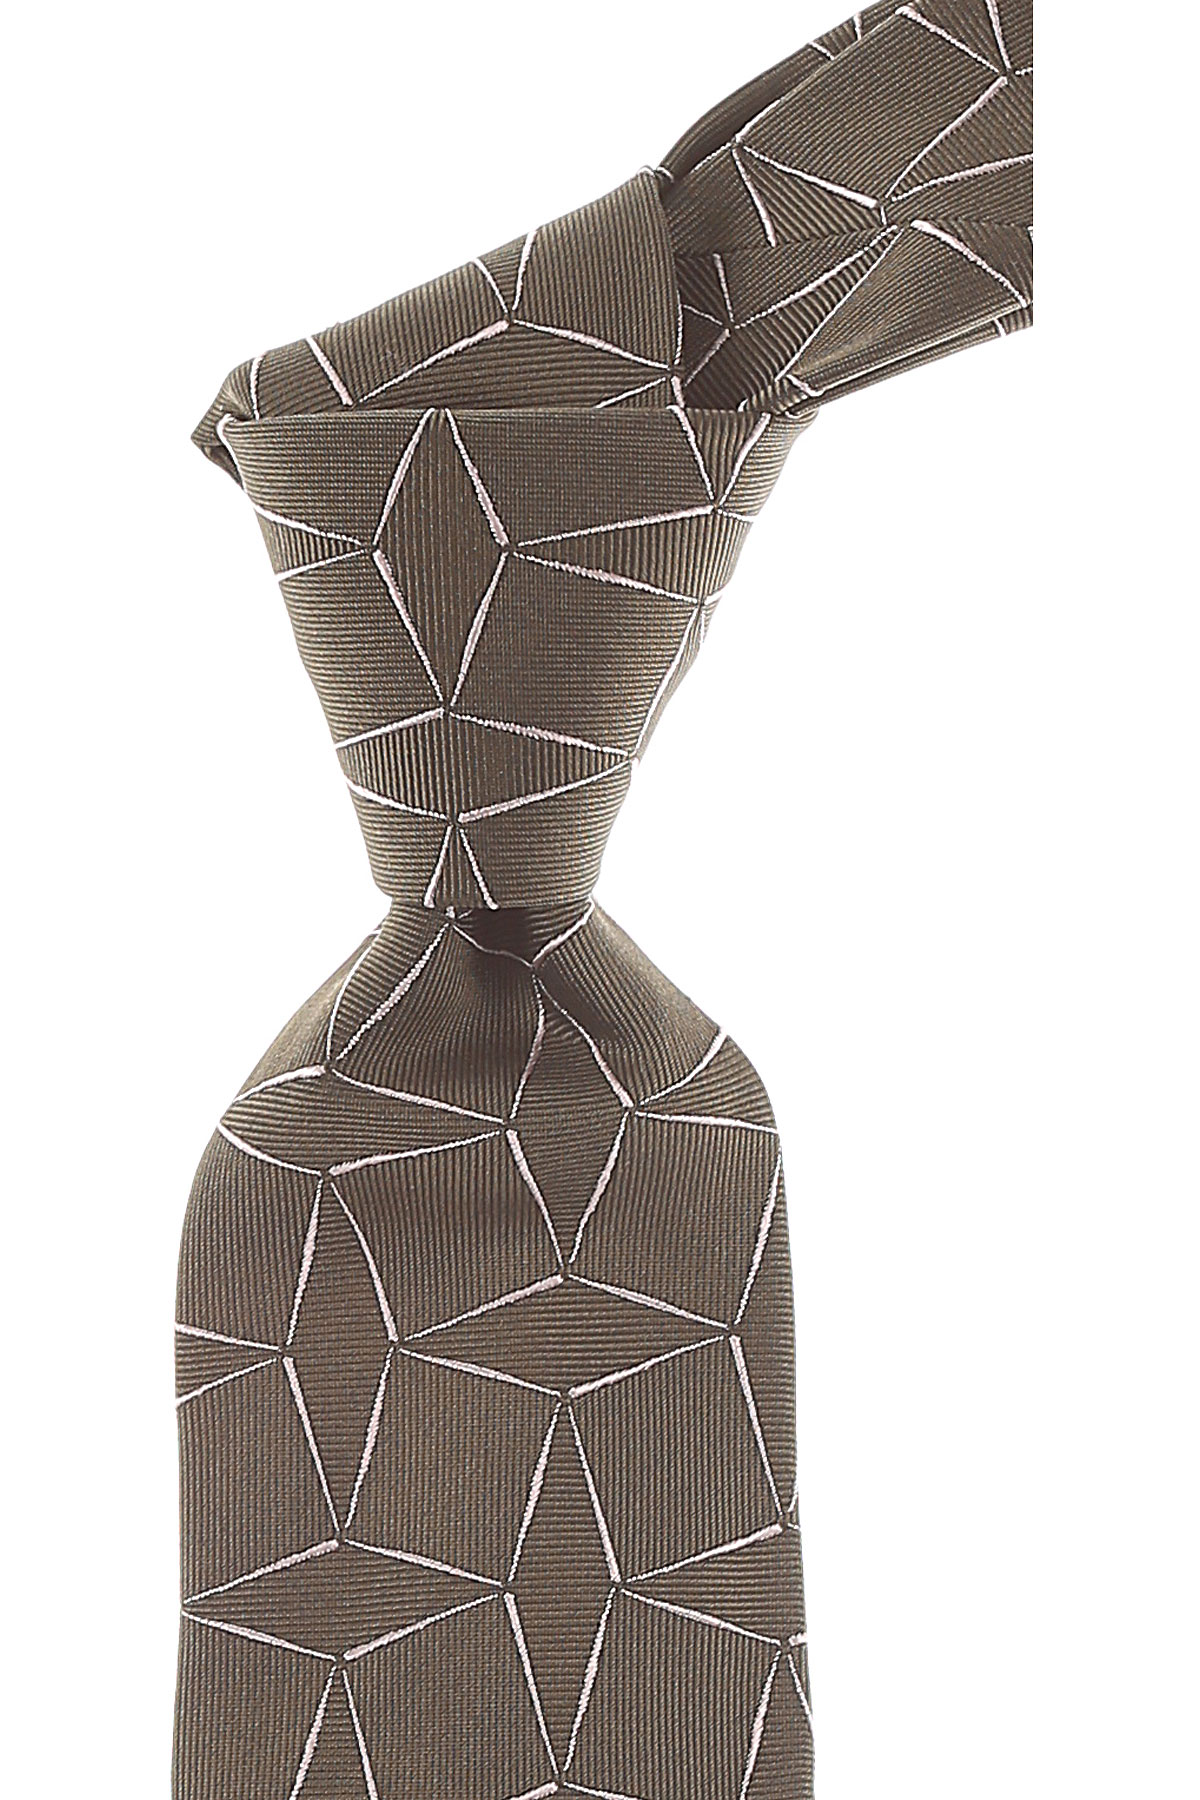 Giorgio_Armani_Ties_On_Sale_Military_Green_Silk_2019